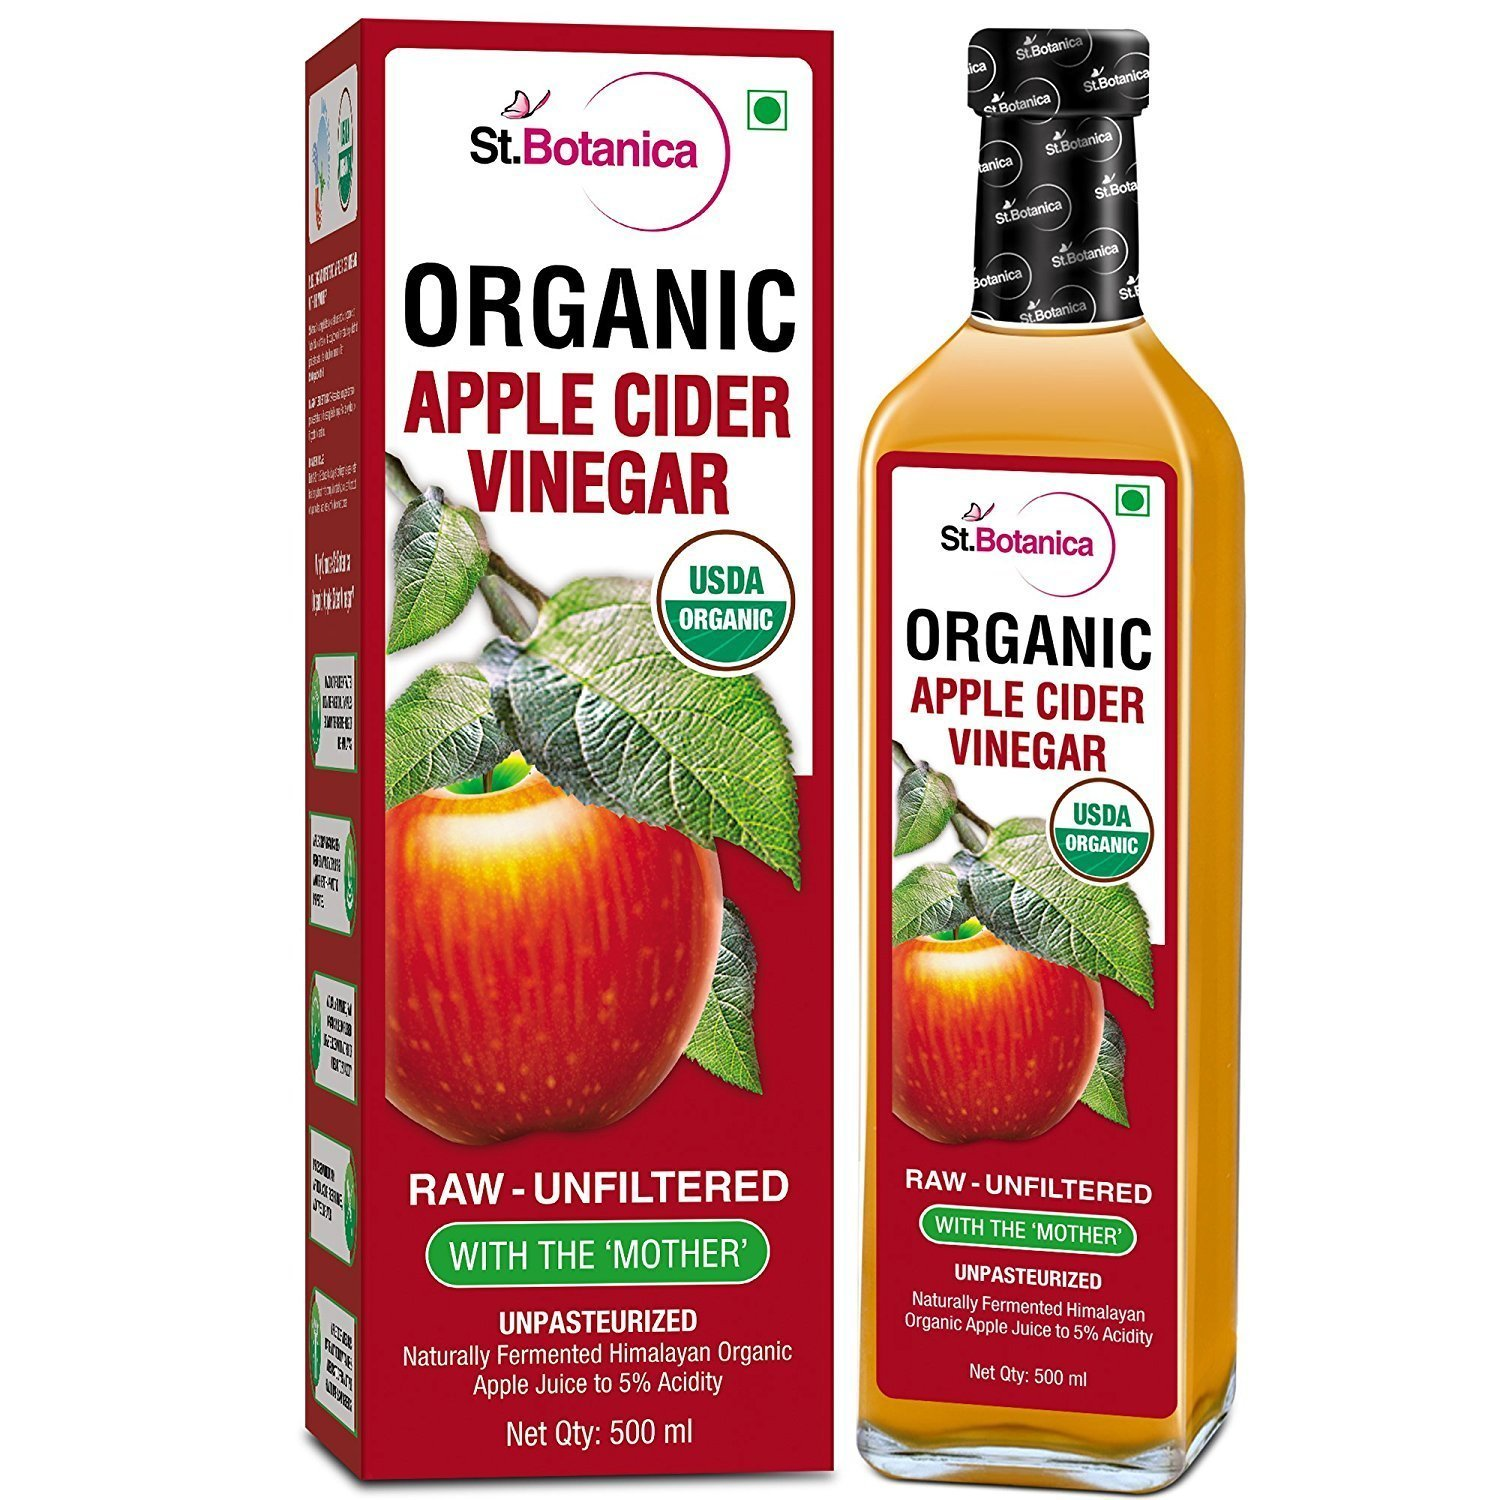 St. Botanica USDA Organic Apple Cider Vinegar With The